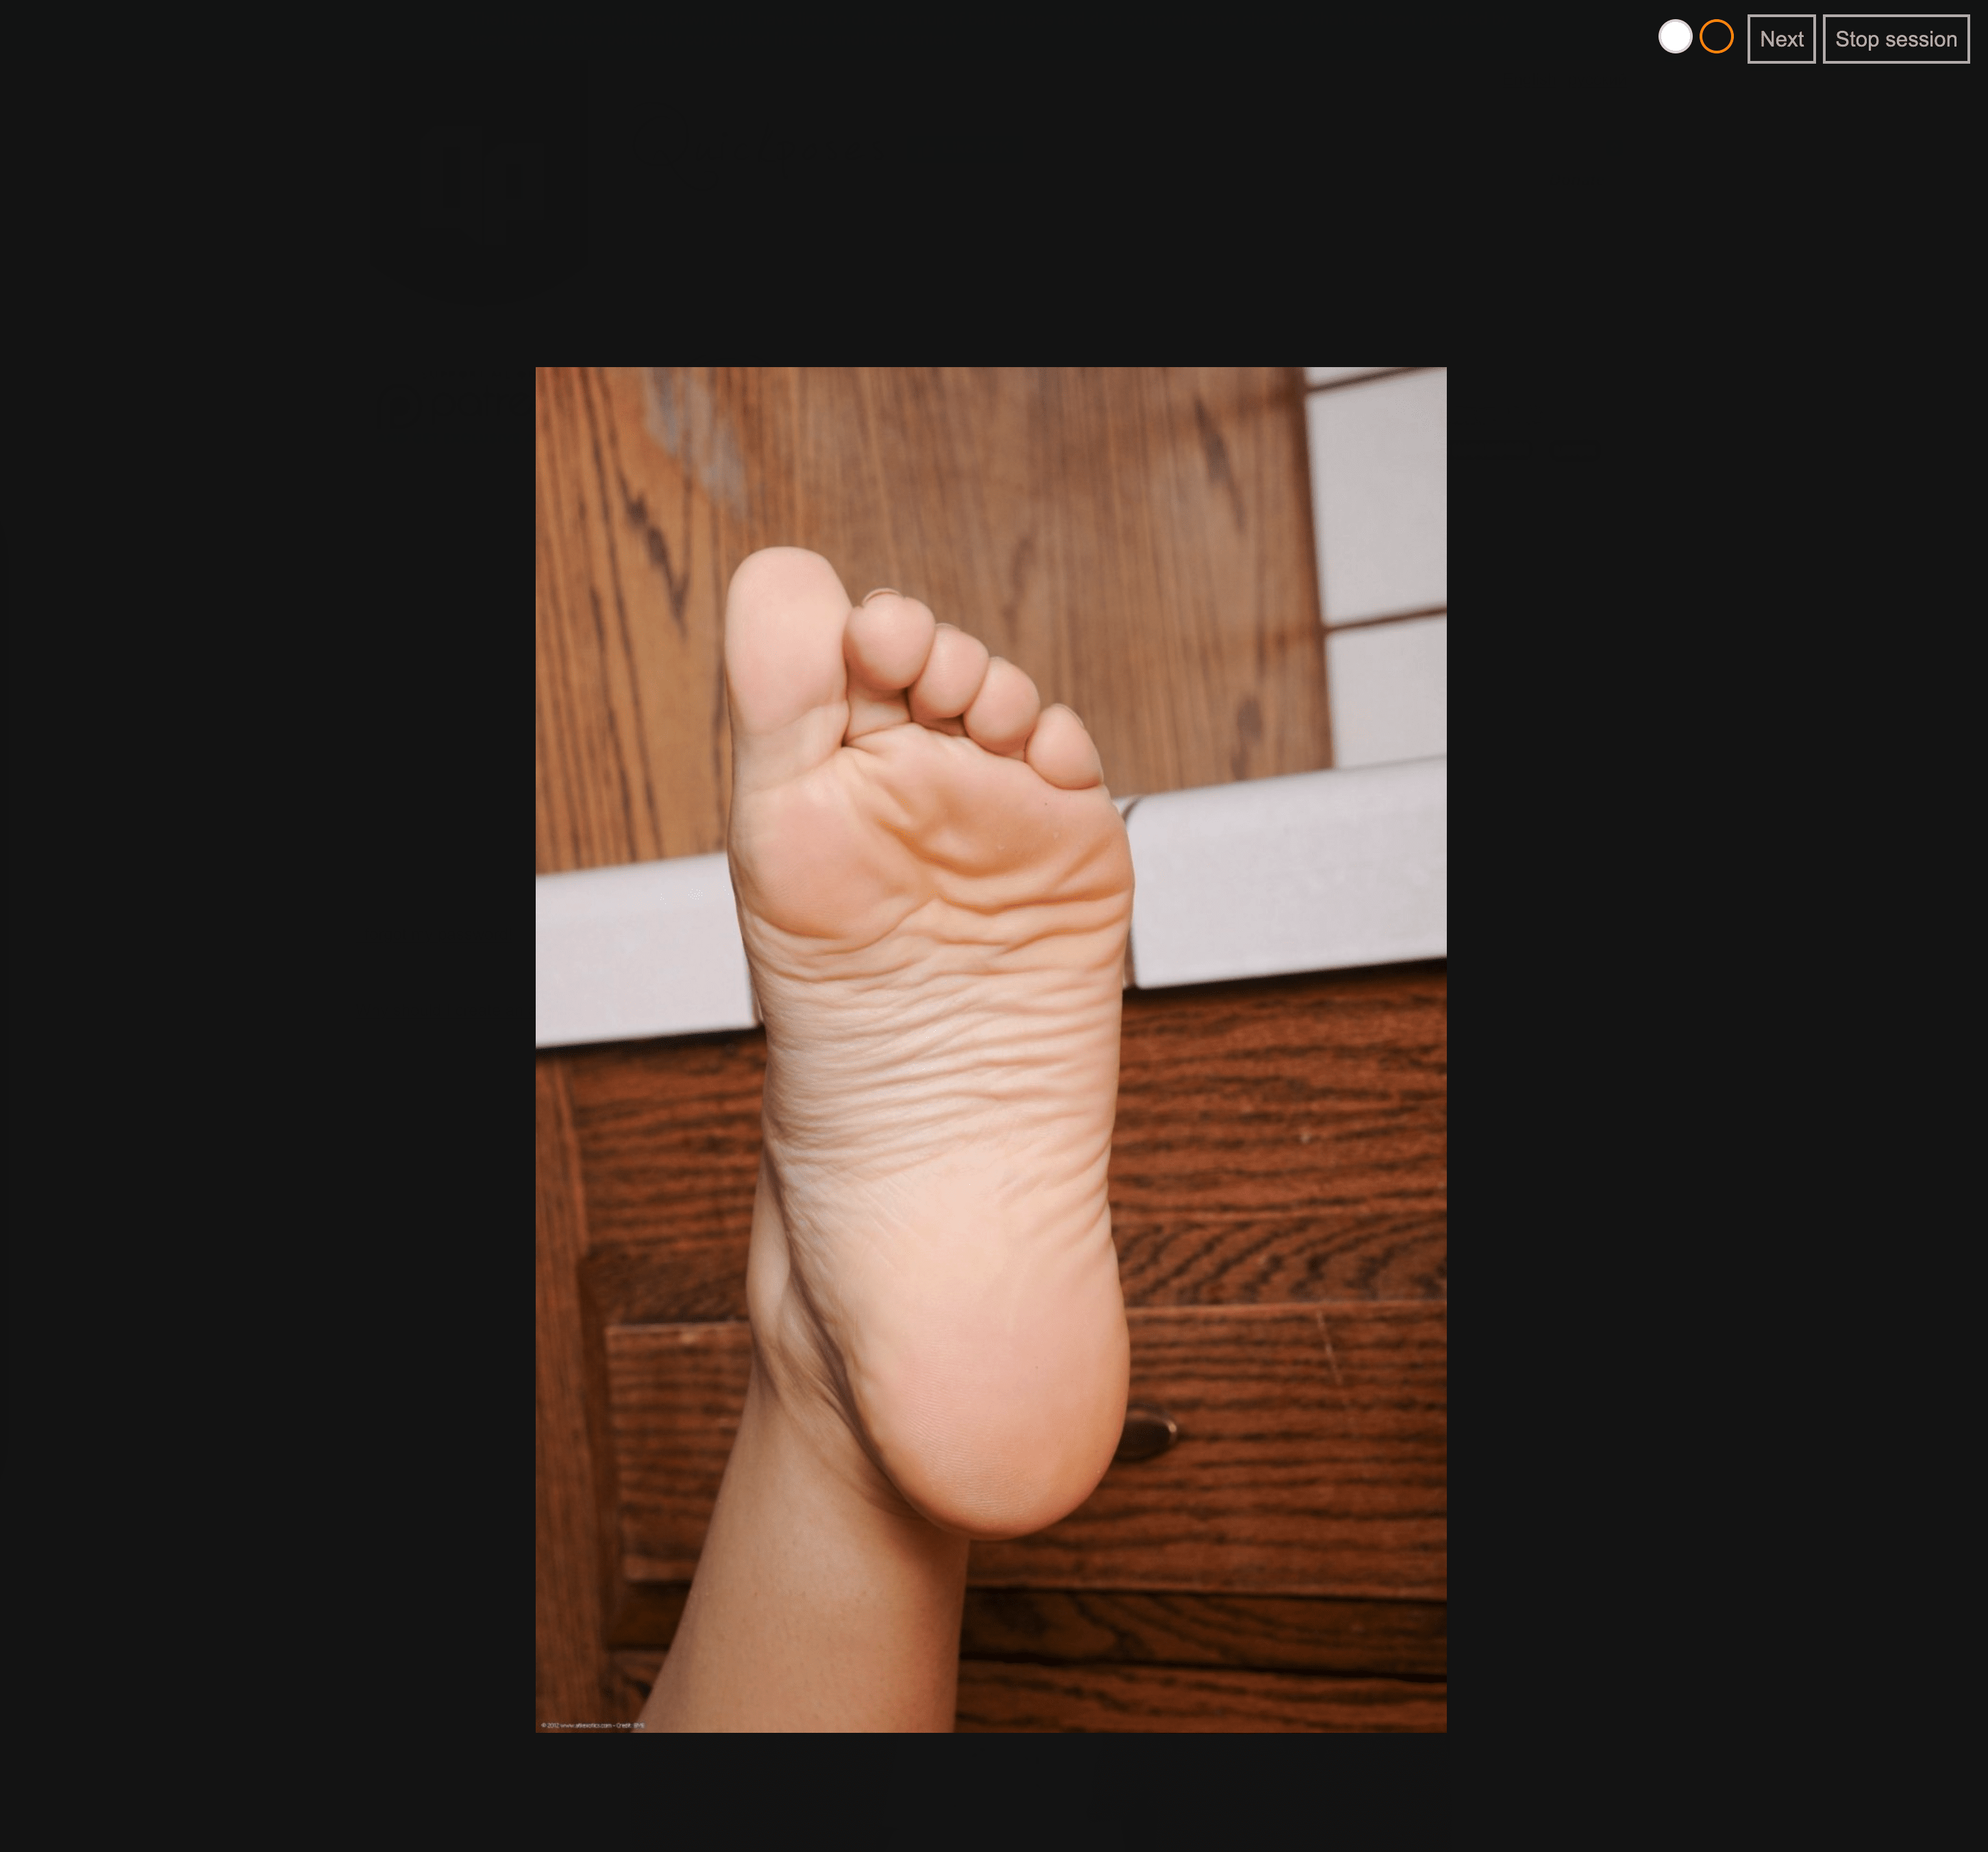 Screenshot of a hoot of a foot stretched upwards.